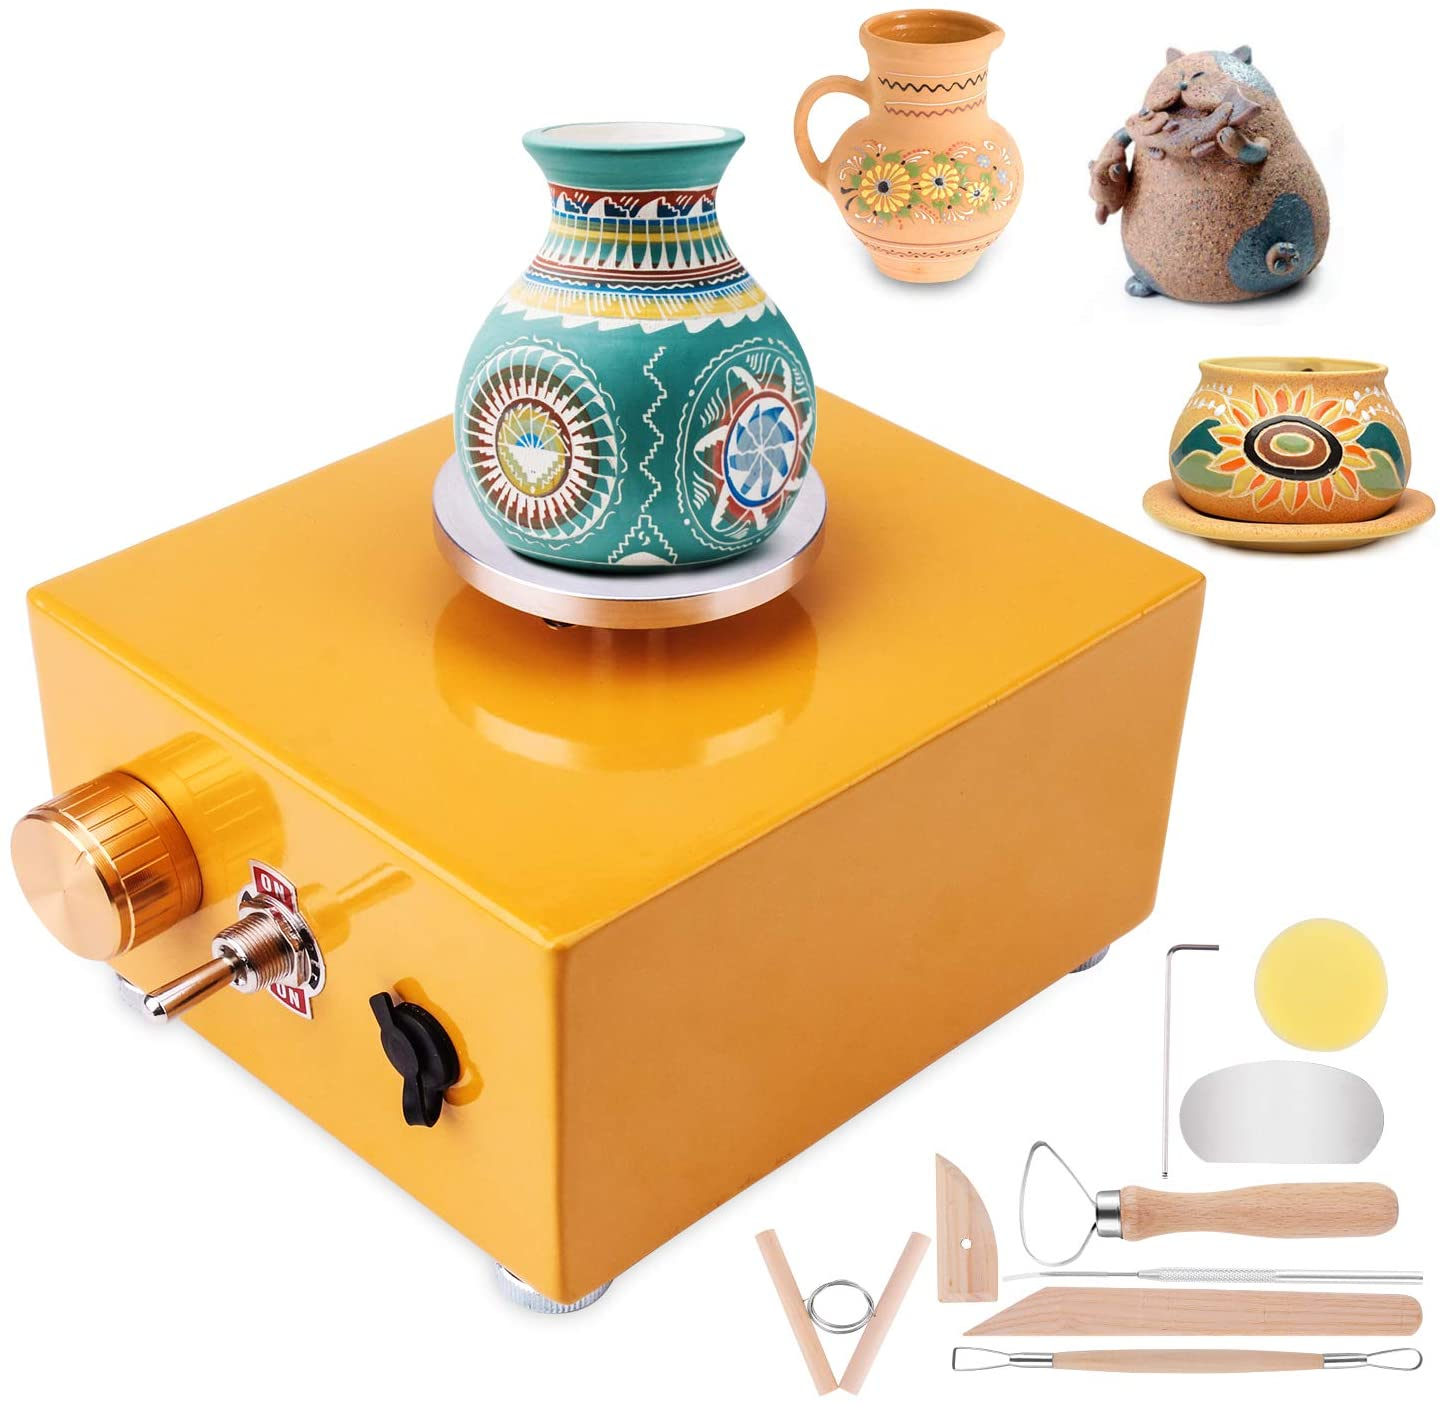 Mini Electric Pottery Wheel DIY Clay 6.5cm /& 10cm Turntable Modeling Sculpture Machine with 6 Ceramic Rotate Craft Making Tools for School Teaching Home